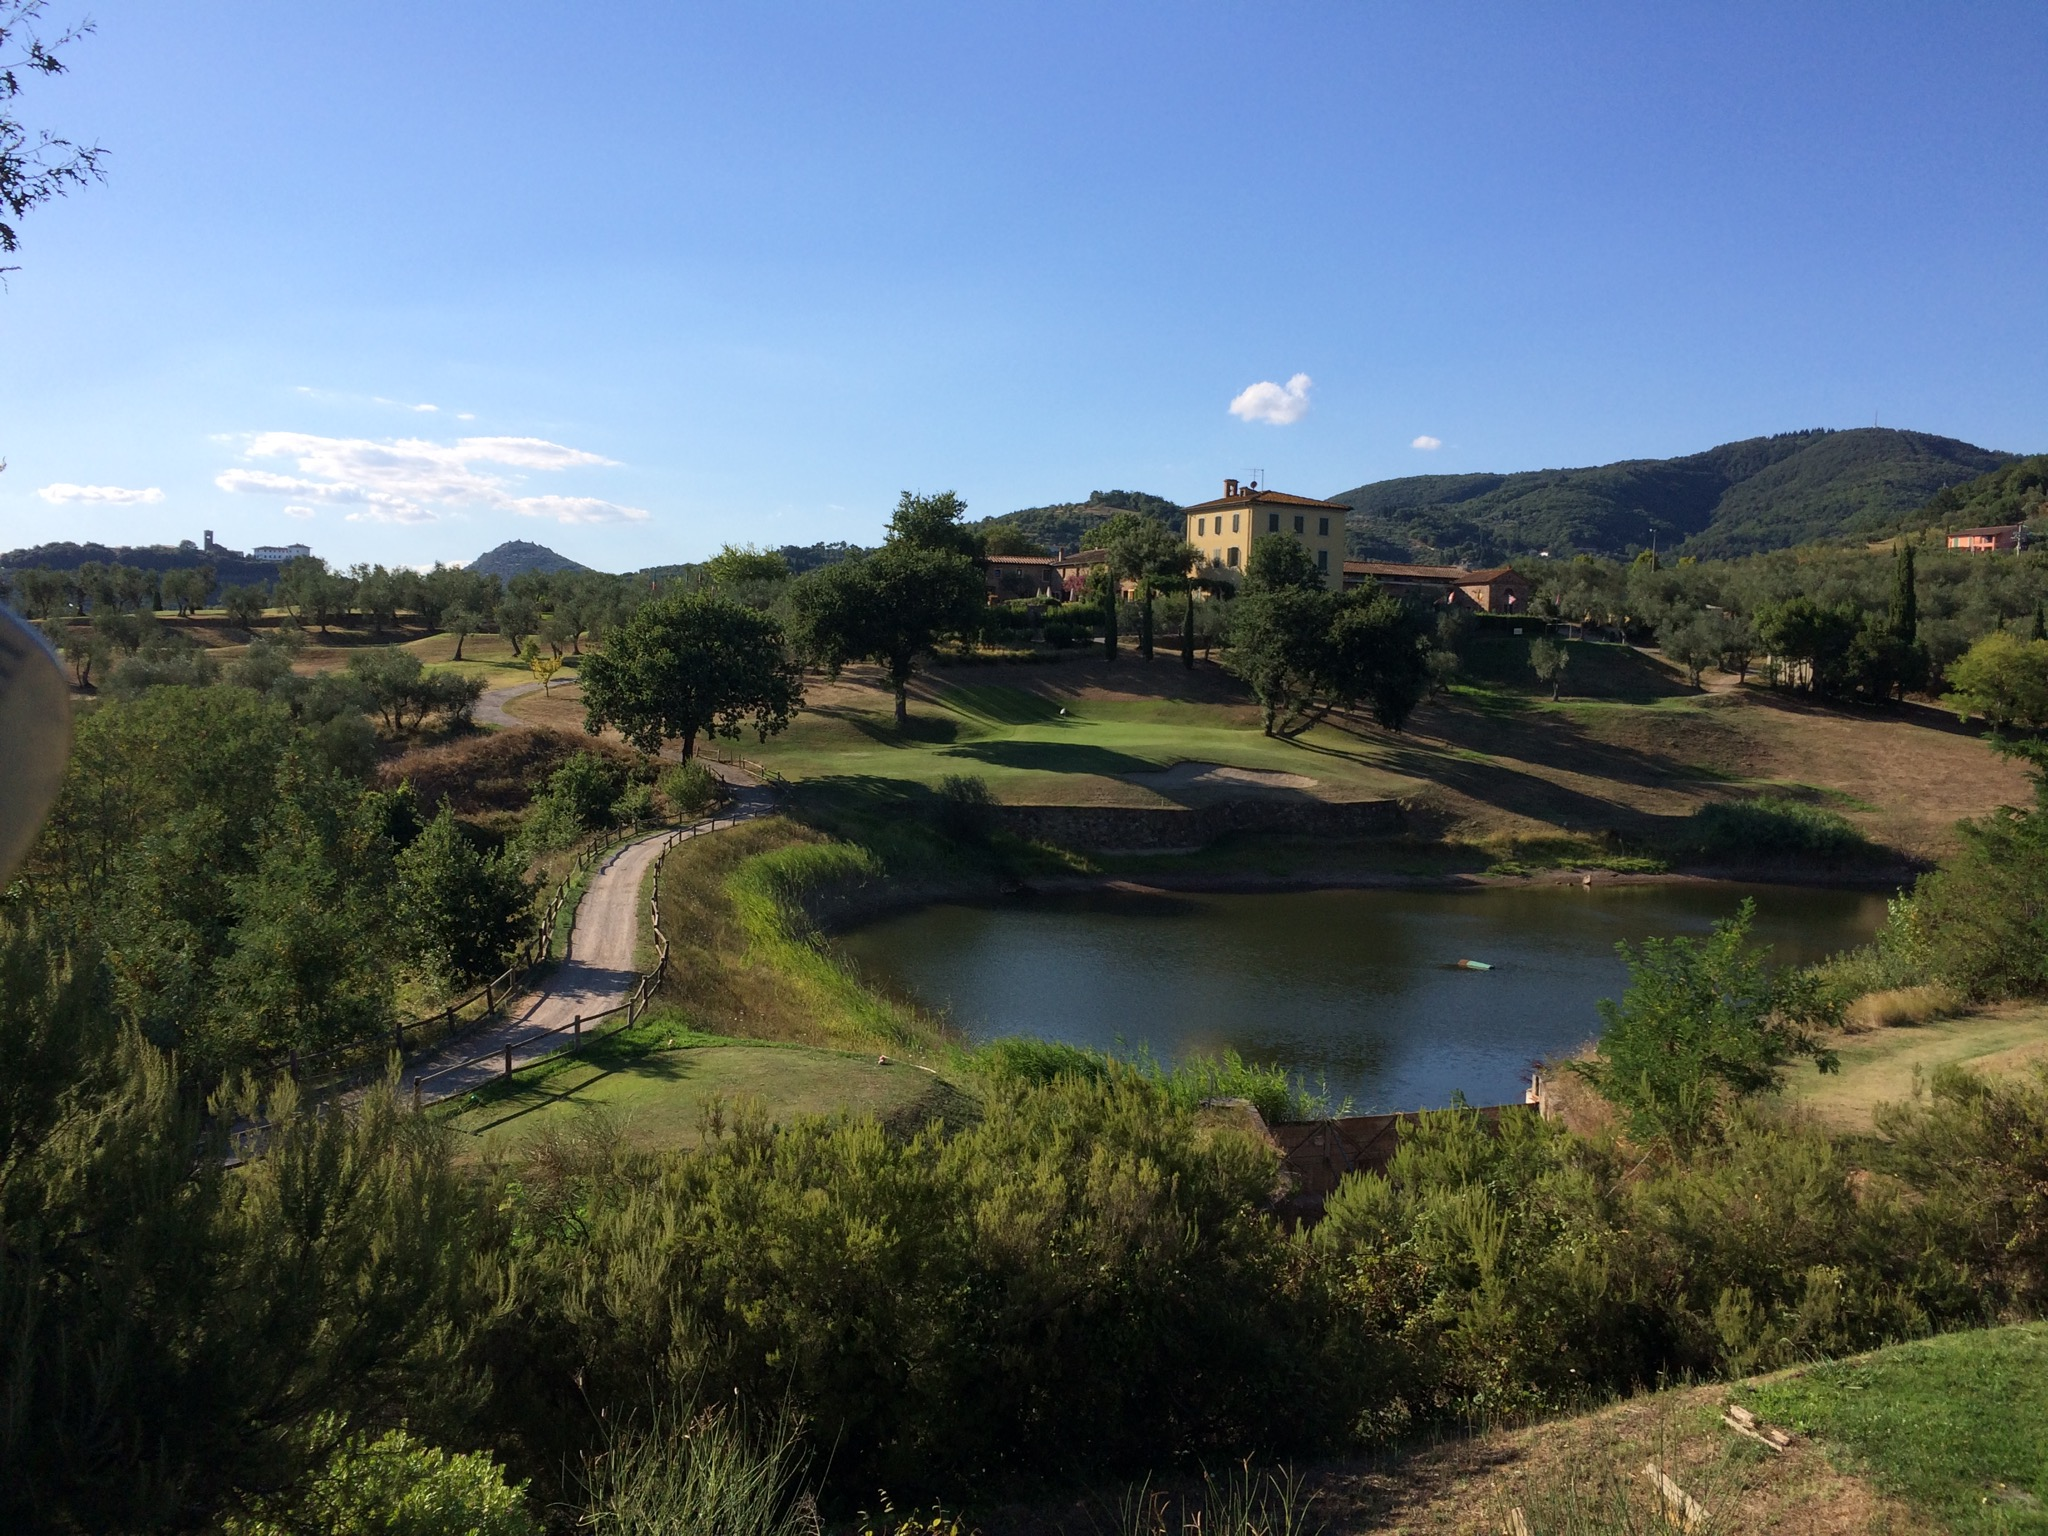 Golf in Toscana, location cerimonie, vacanze in agriturismo | Agriturismo Toscana Podere Marchiano